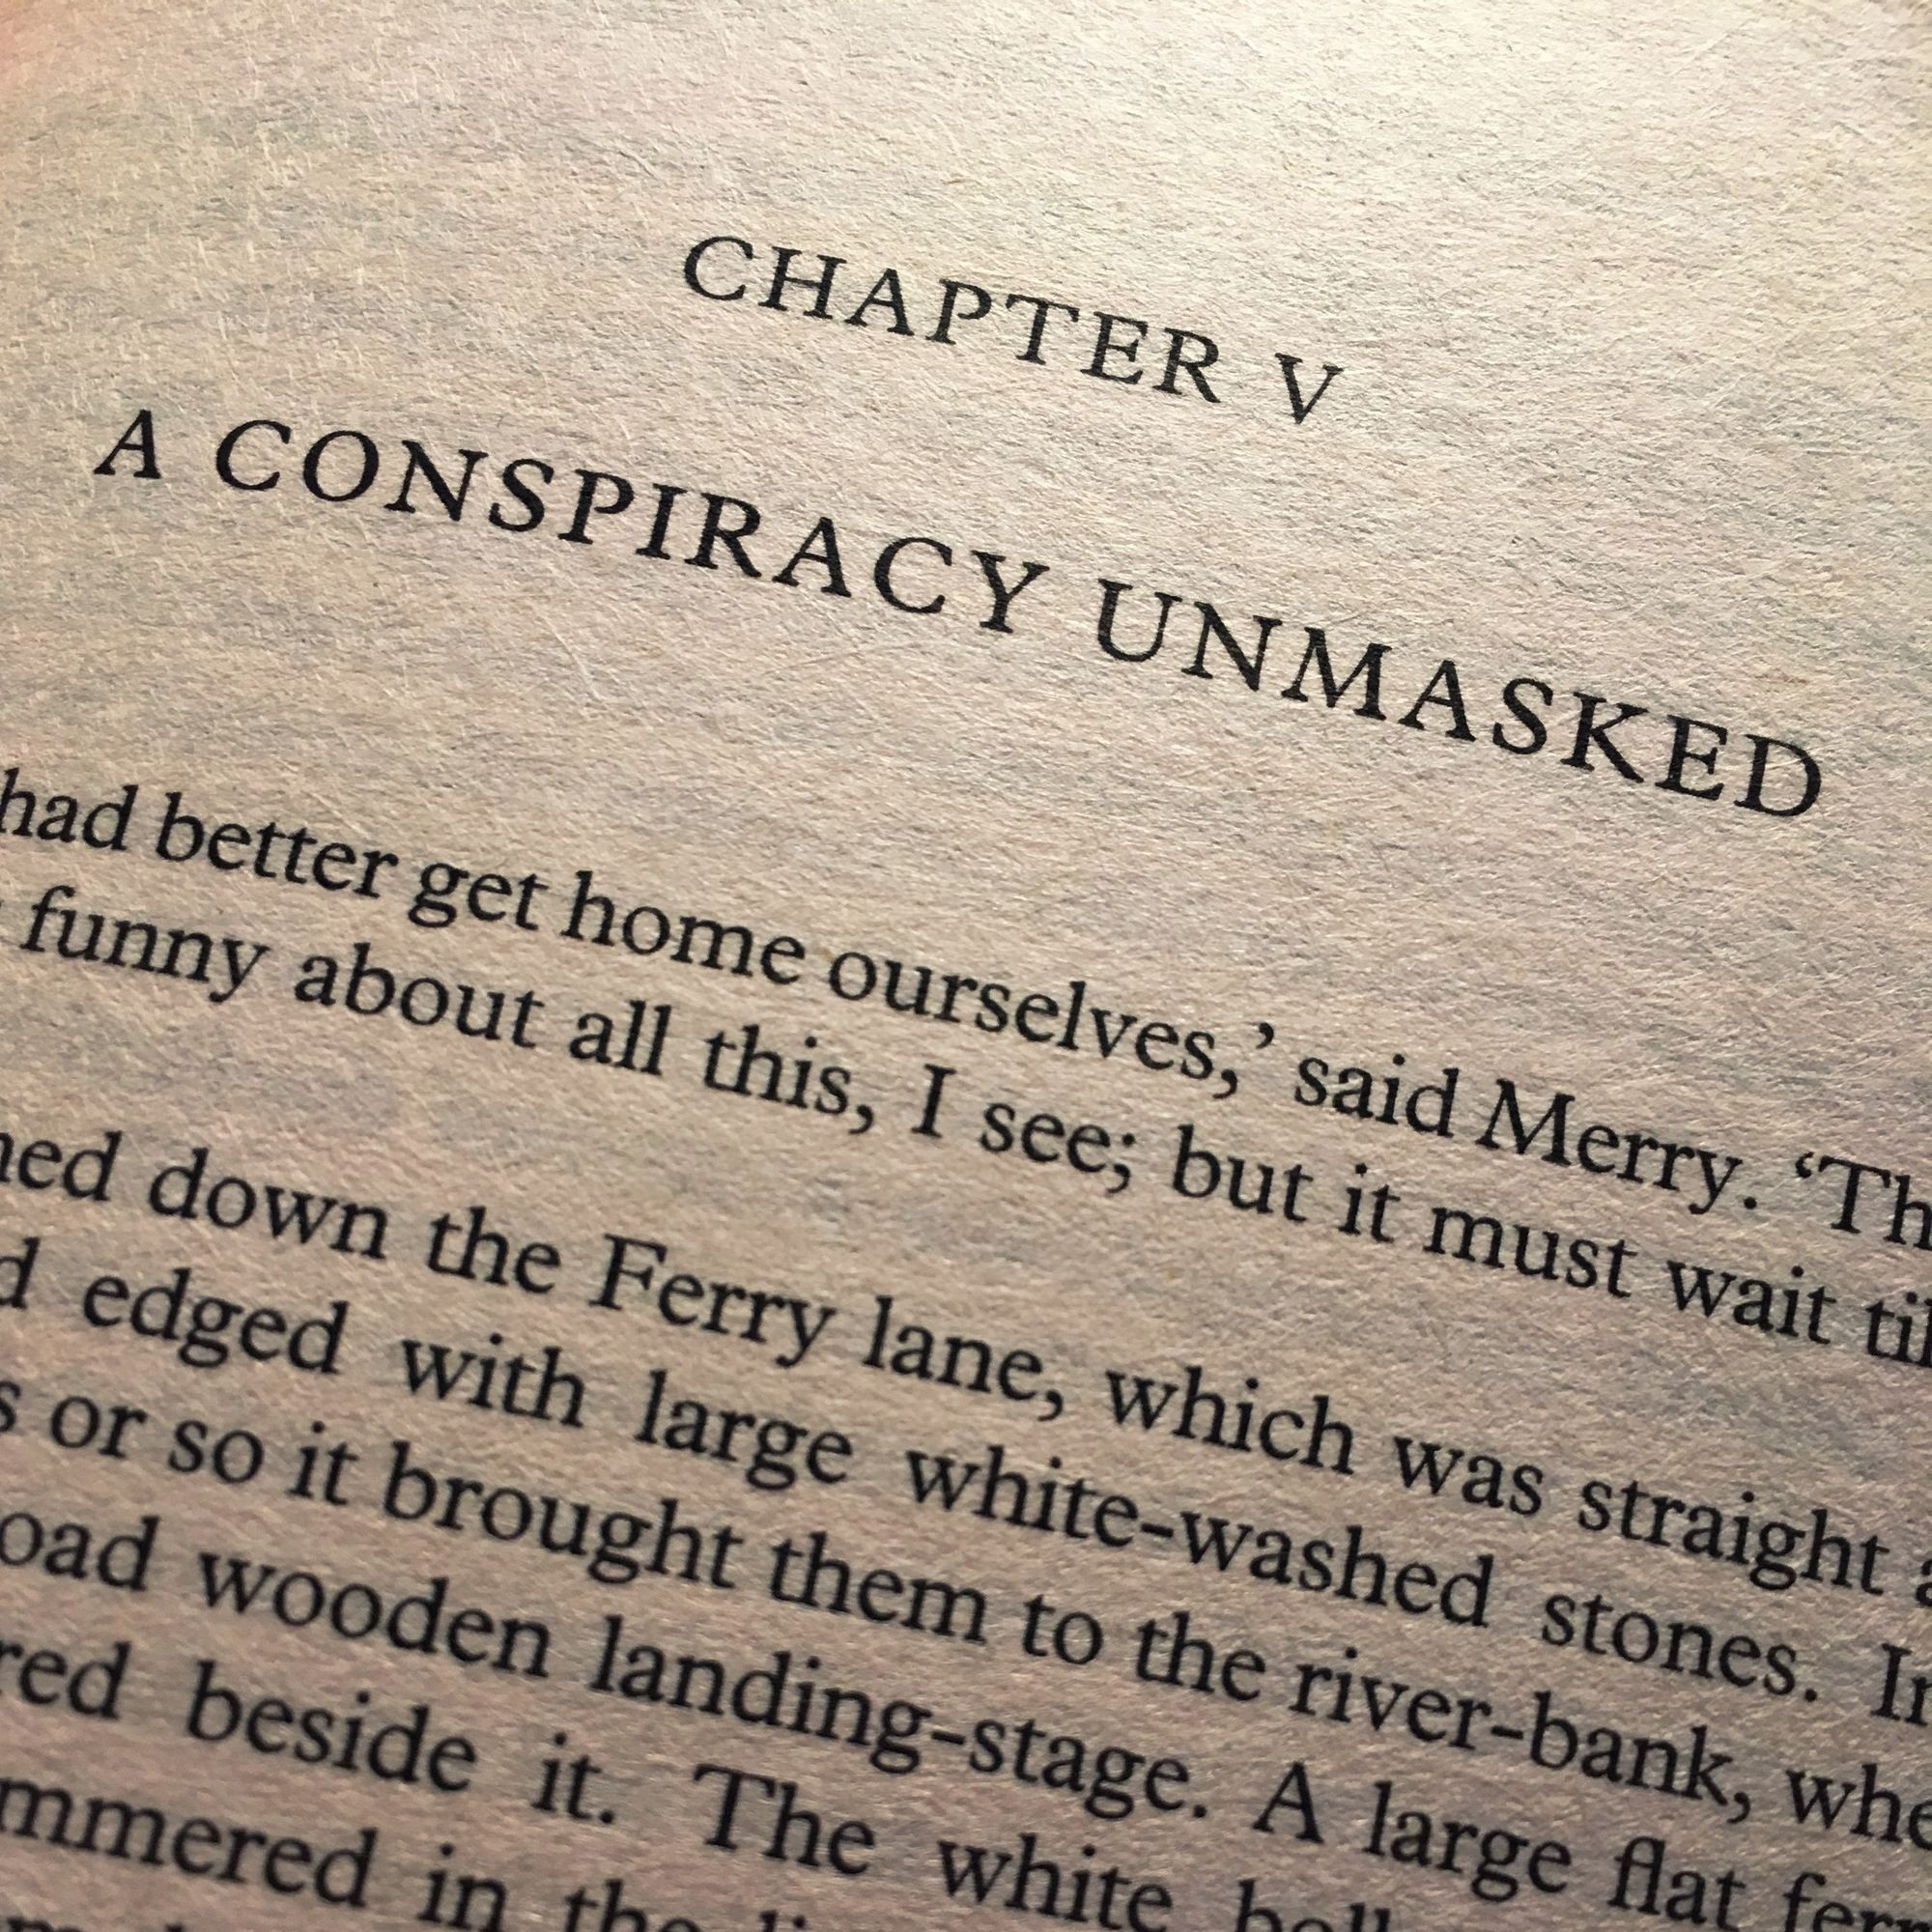 The Fellowship of The Ring: A Conspiracy Unmasked